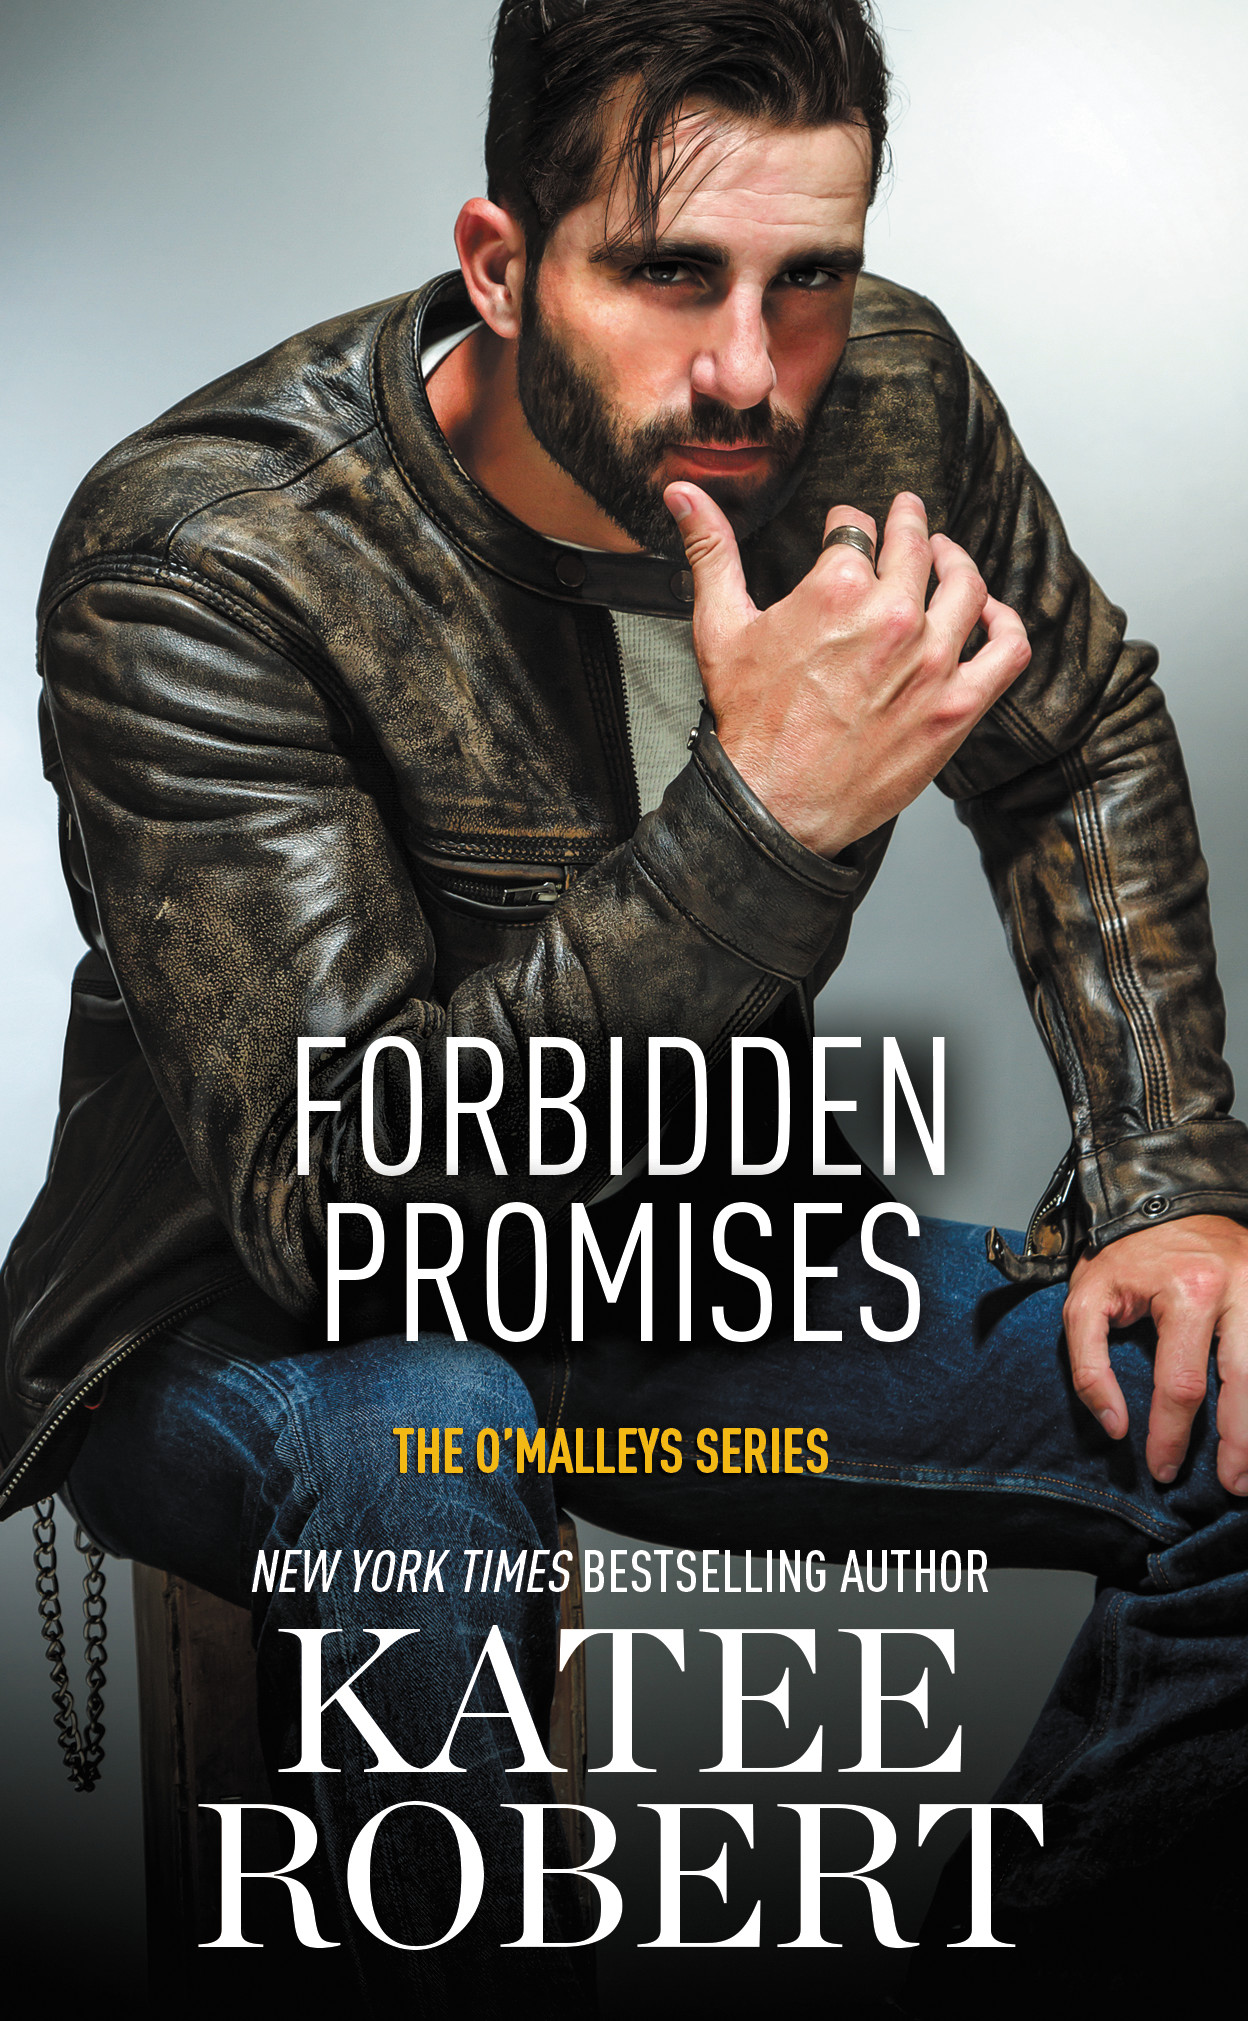 SPOTLIGHT/GIVEAWAY: 'Forbidden Promises' by Katee Robert